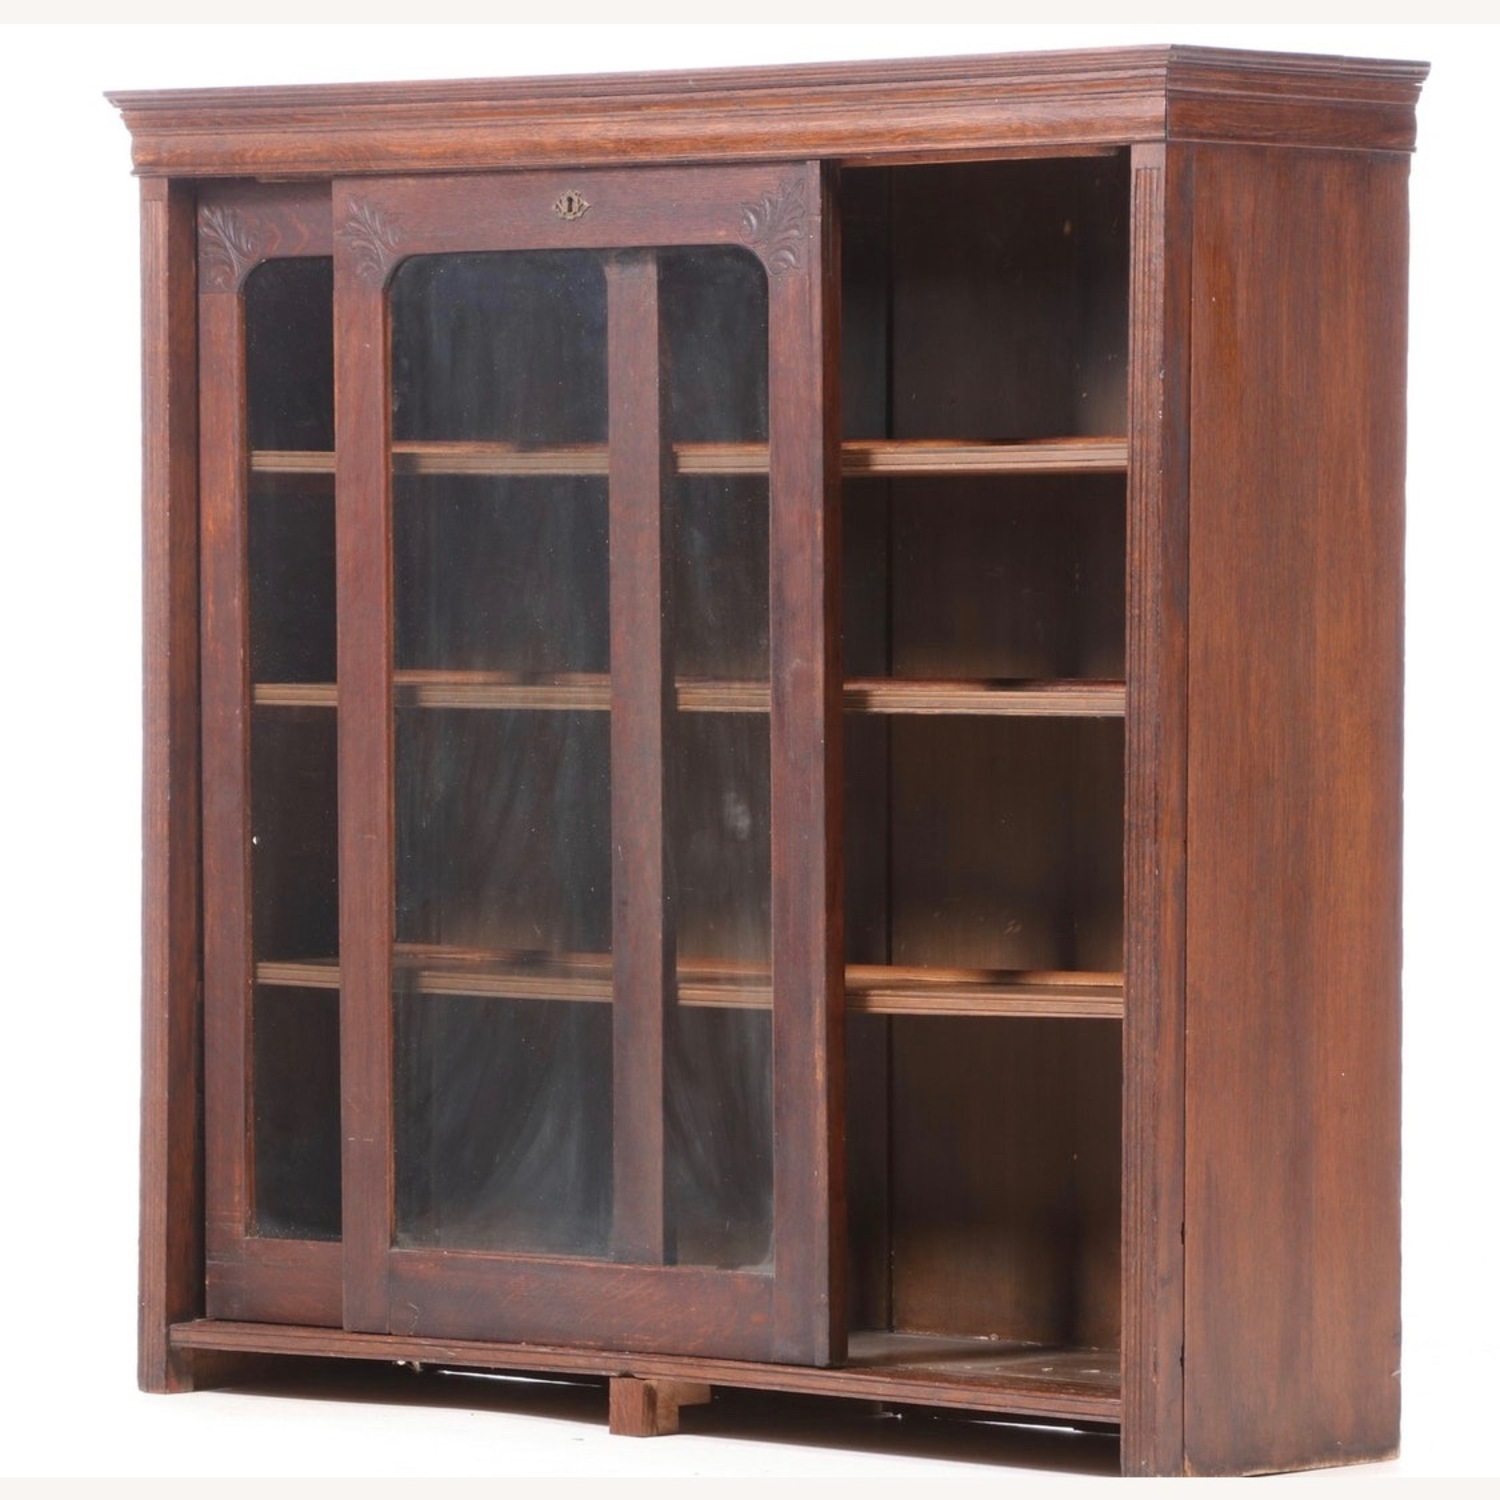 Oak Bookcase Cabinet, Early 20th Century - image-2